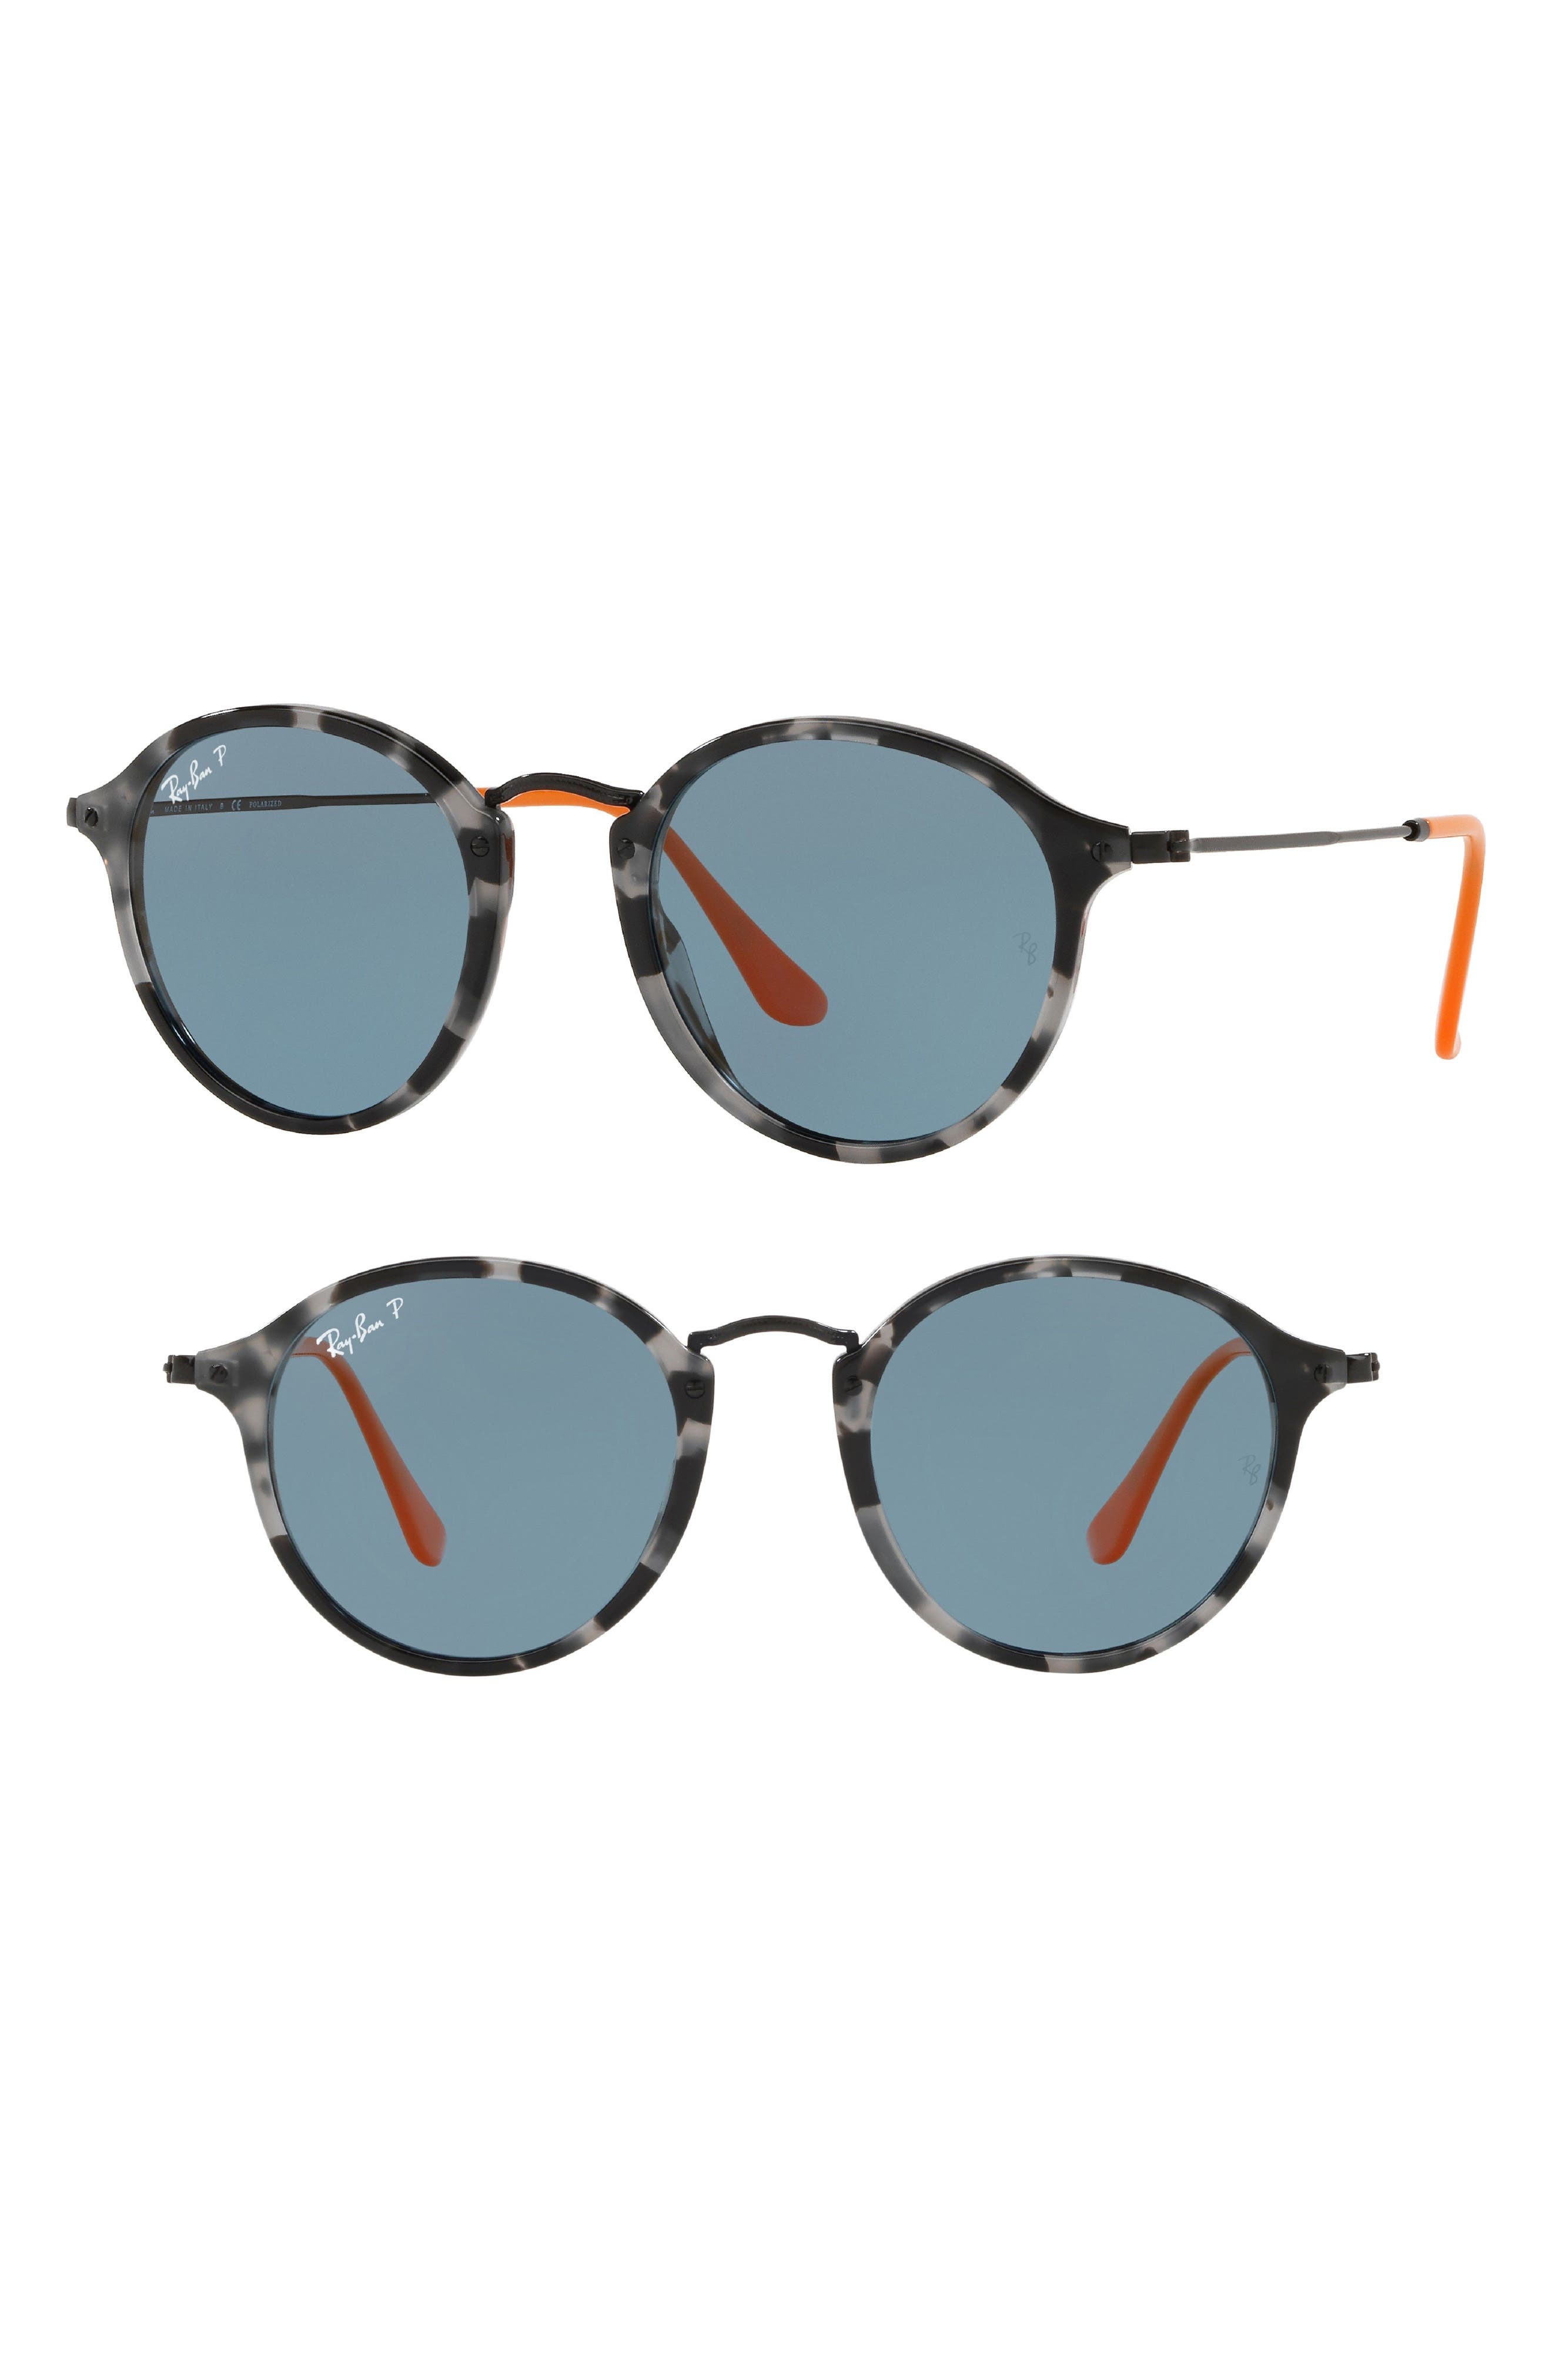 52mm Polarized Round Sunglasses,                         Main,                         color, Dark Grey Tortoise